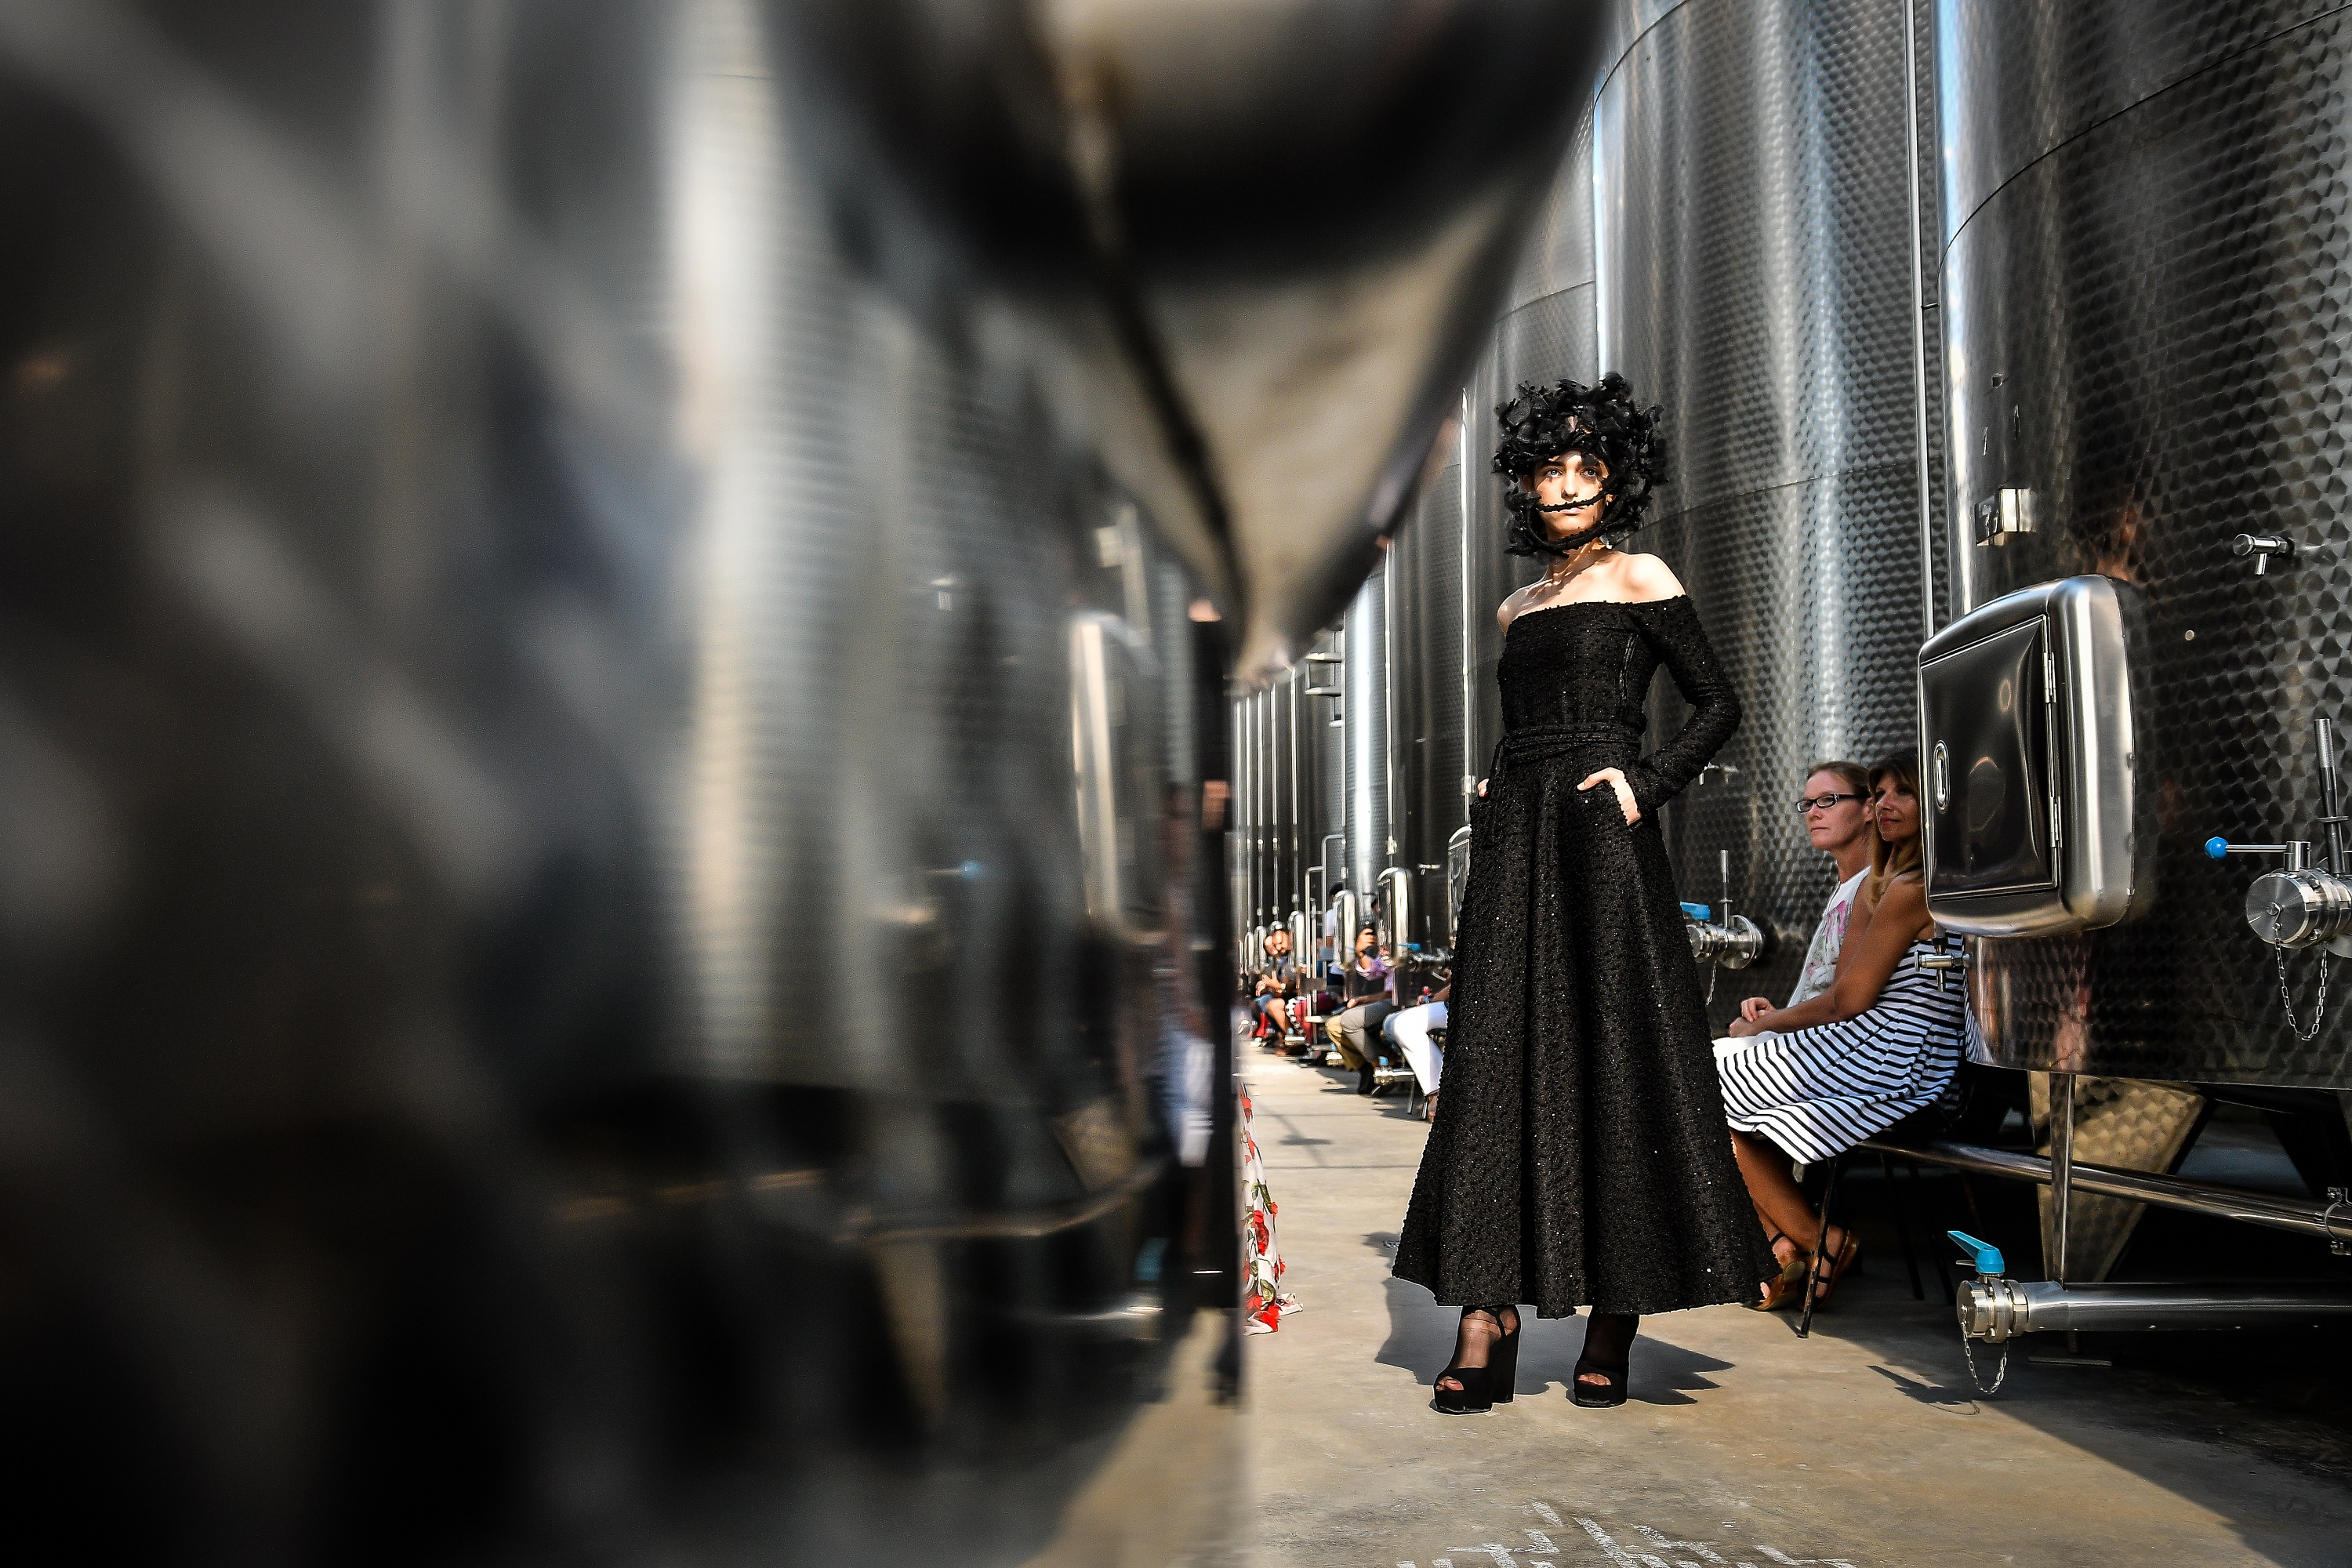 10th edition of Feeric Fashion Week begins at Tăuni Wine Cellar and Bethlen-Haller Castle